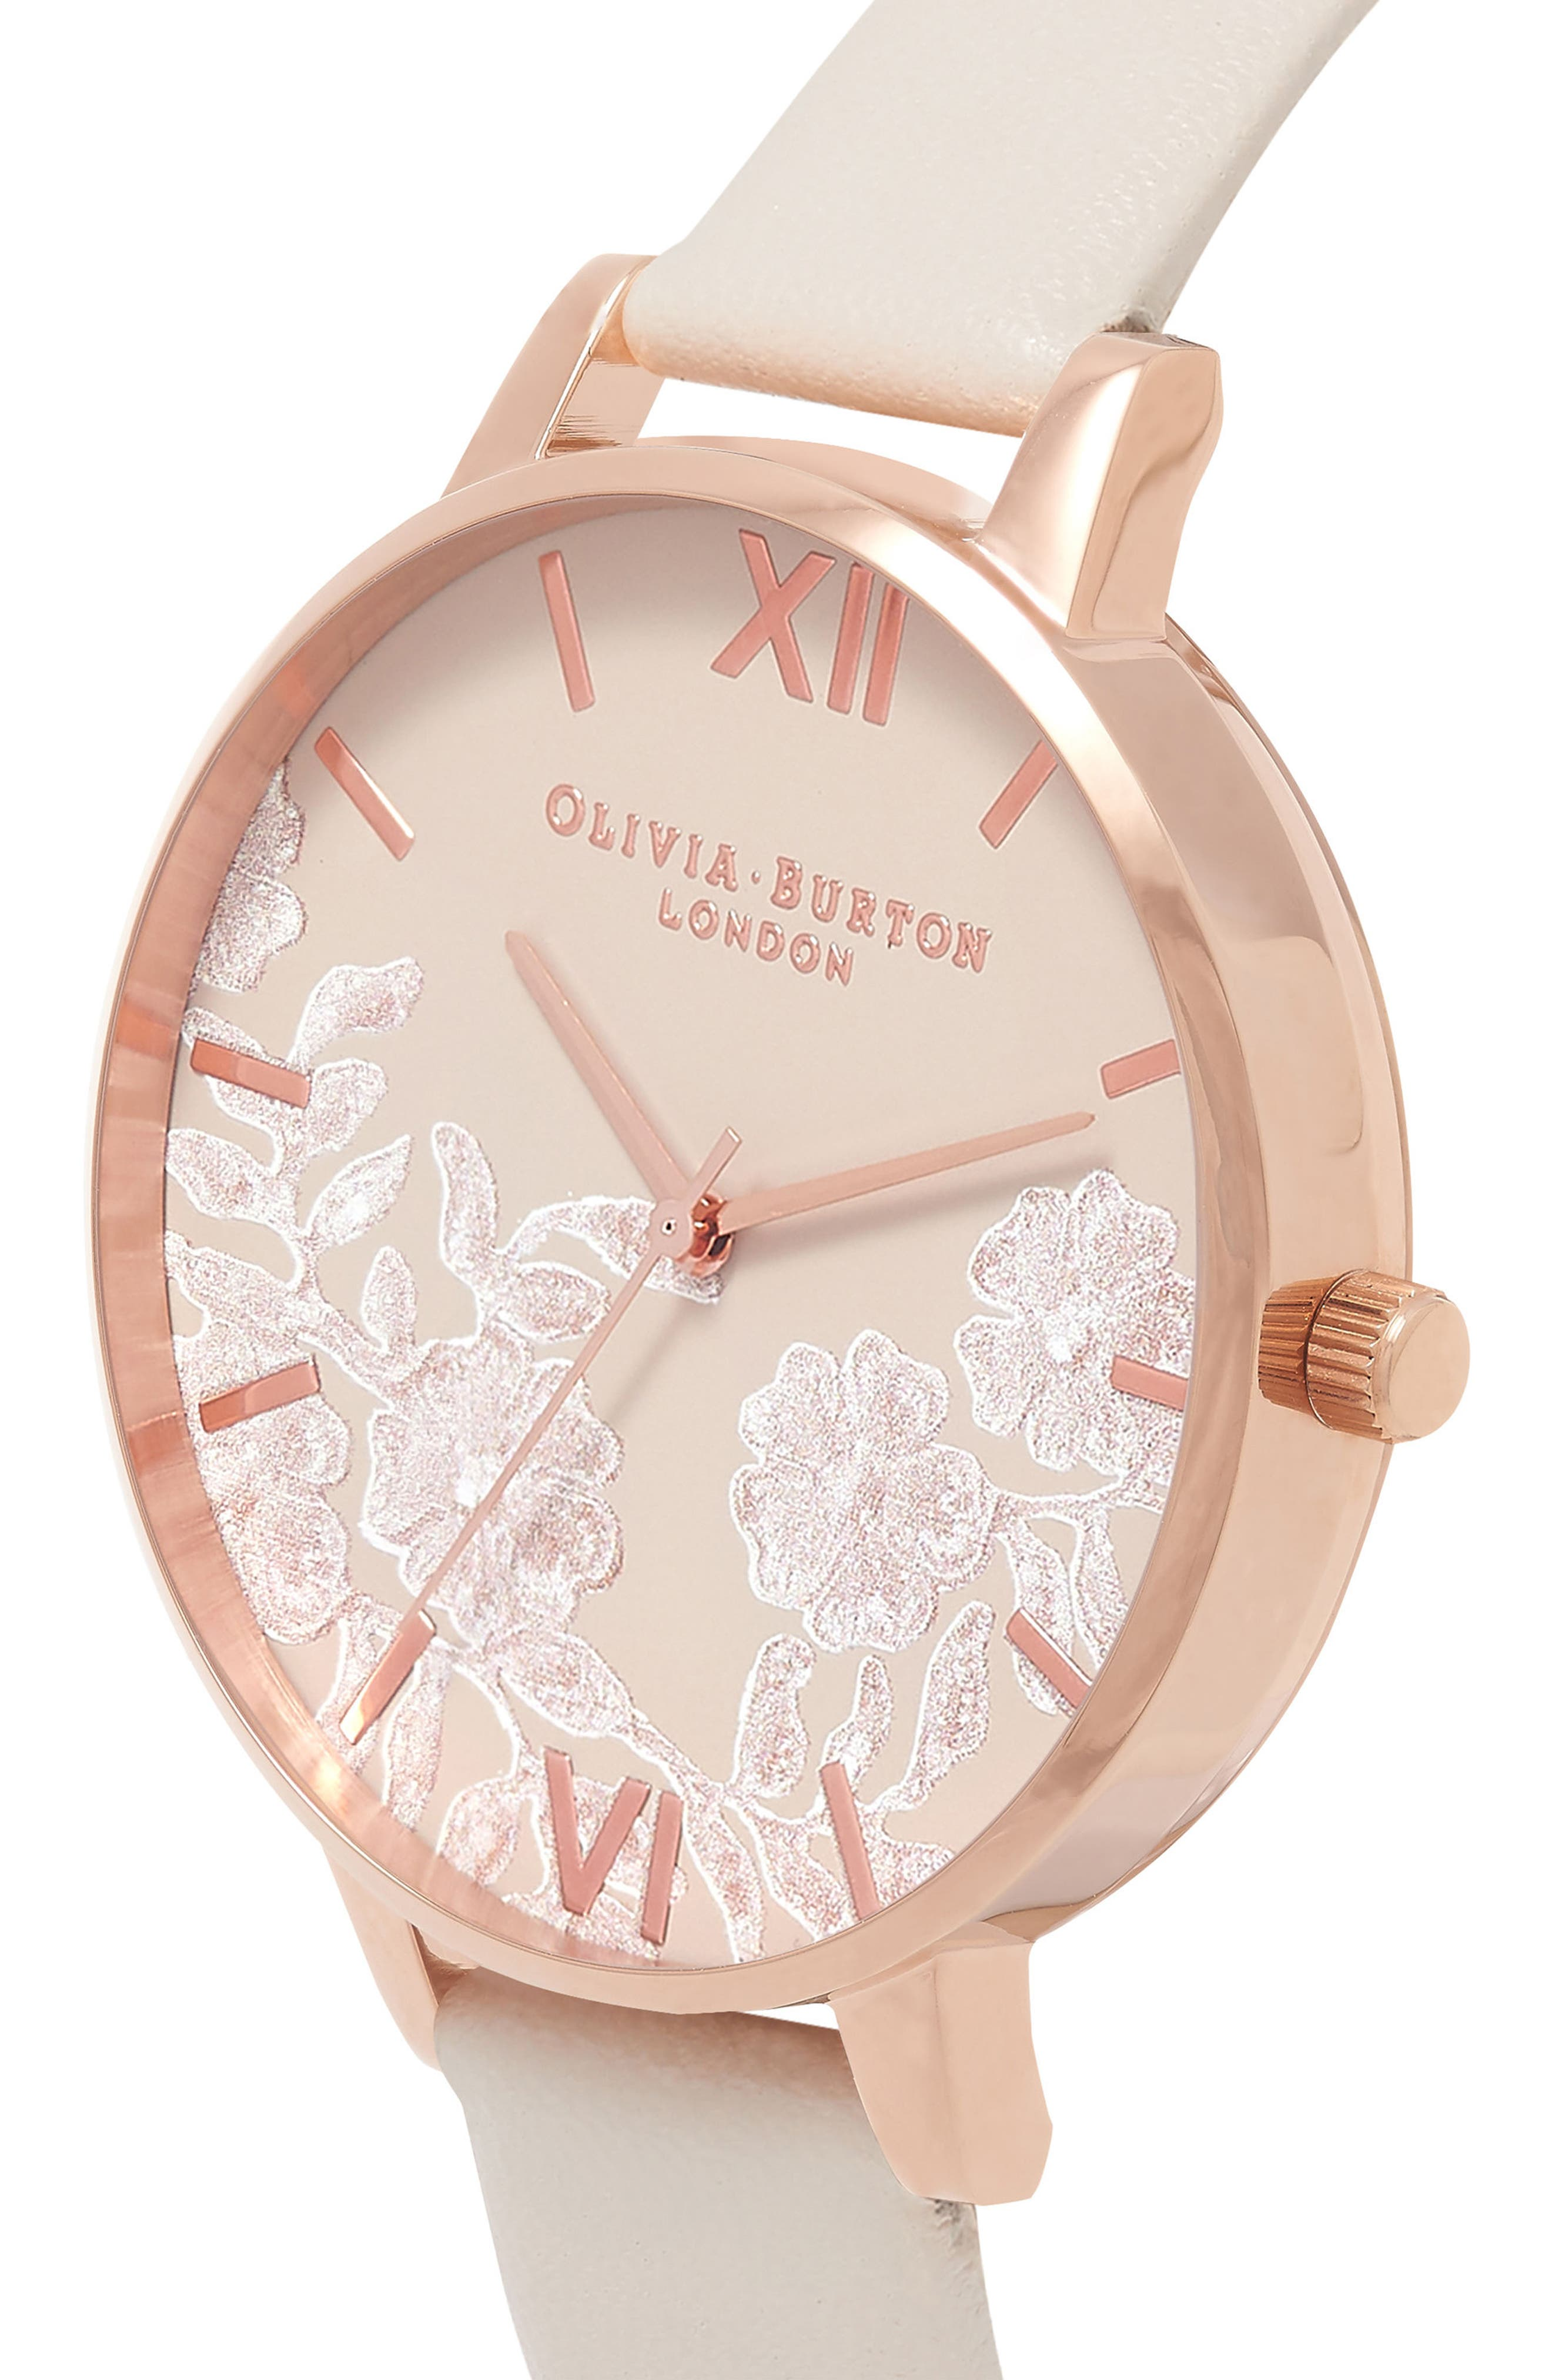 Lace Detail Faux Leather Strap Watch, 38mm,                             Alternate thumbnail 5, color,                             NUDE/ GREY FLORAL/ ROSE GOLD